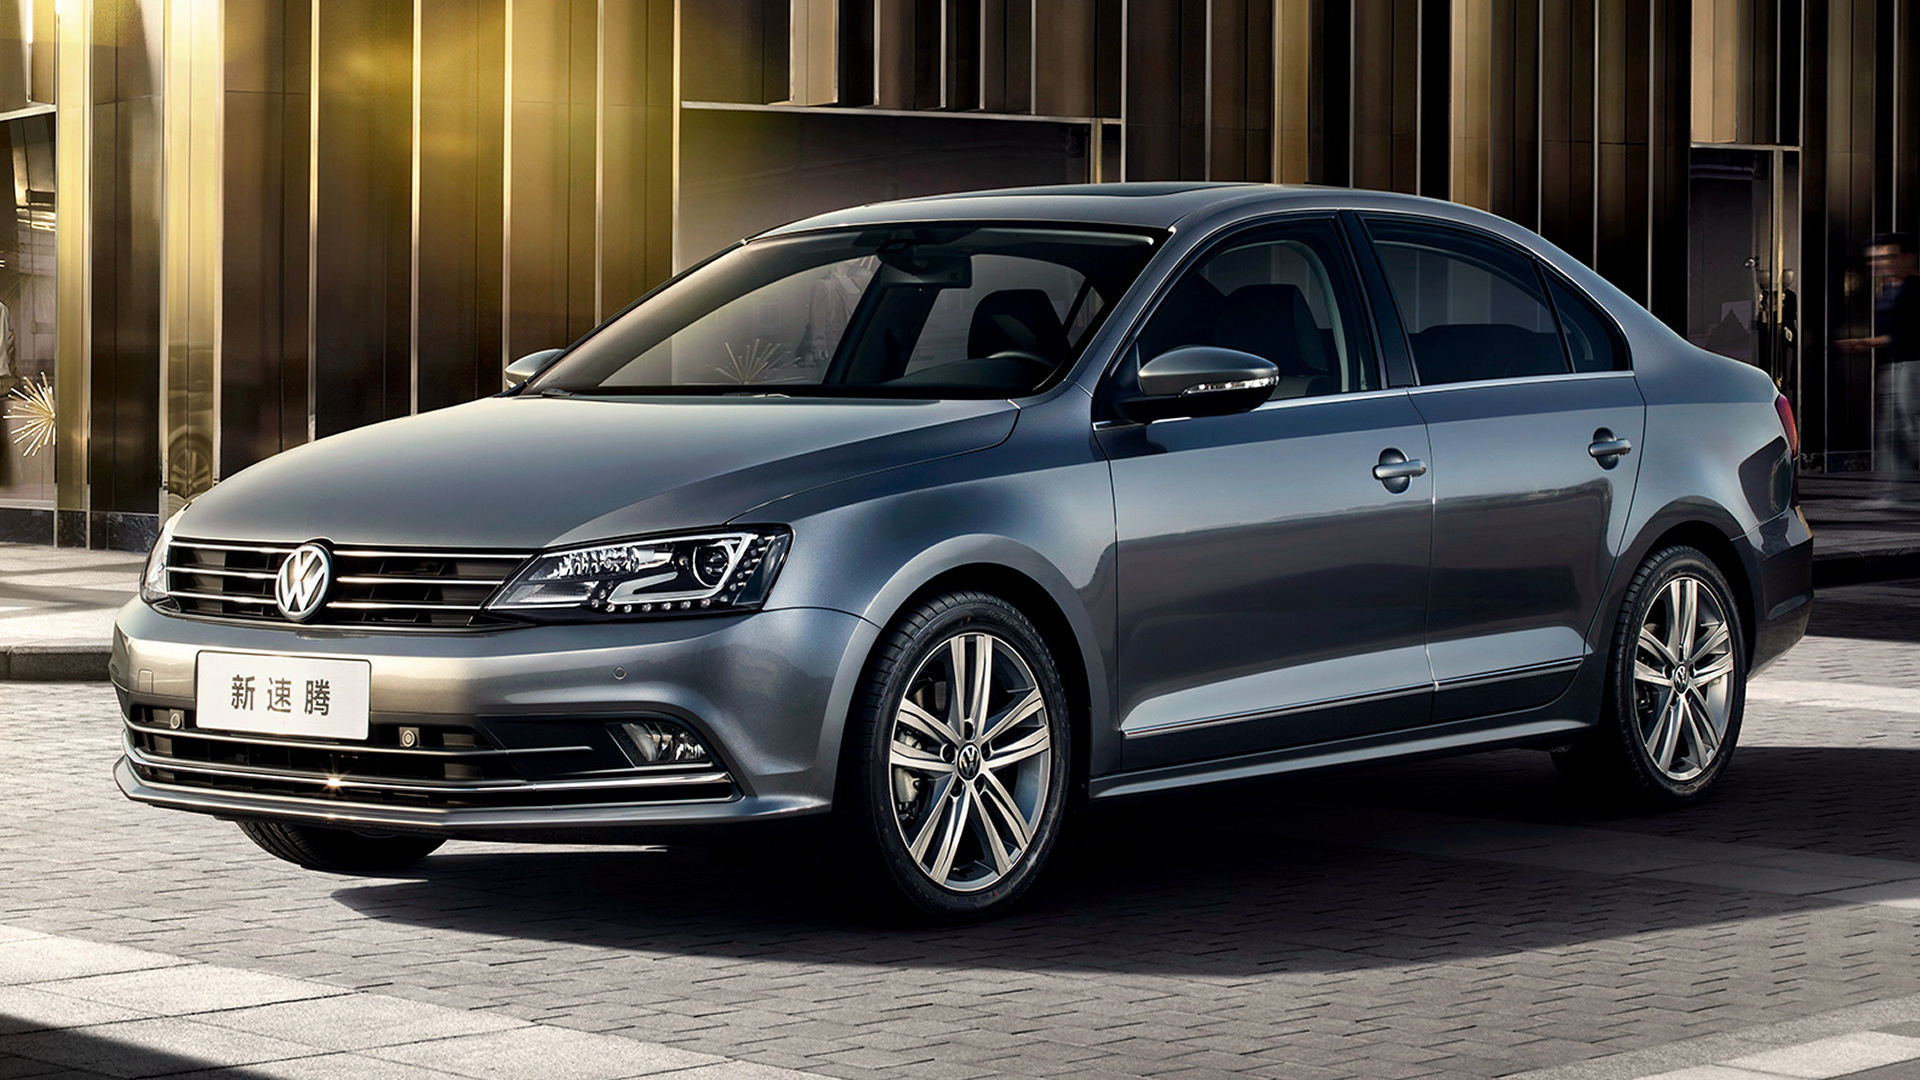 2015 Volkswagen Sagitar Wallpapers And Hd Images Car Pixel